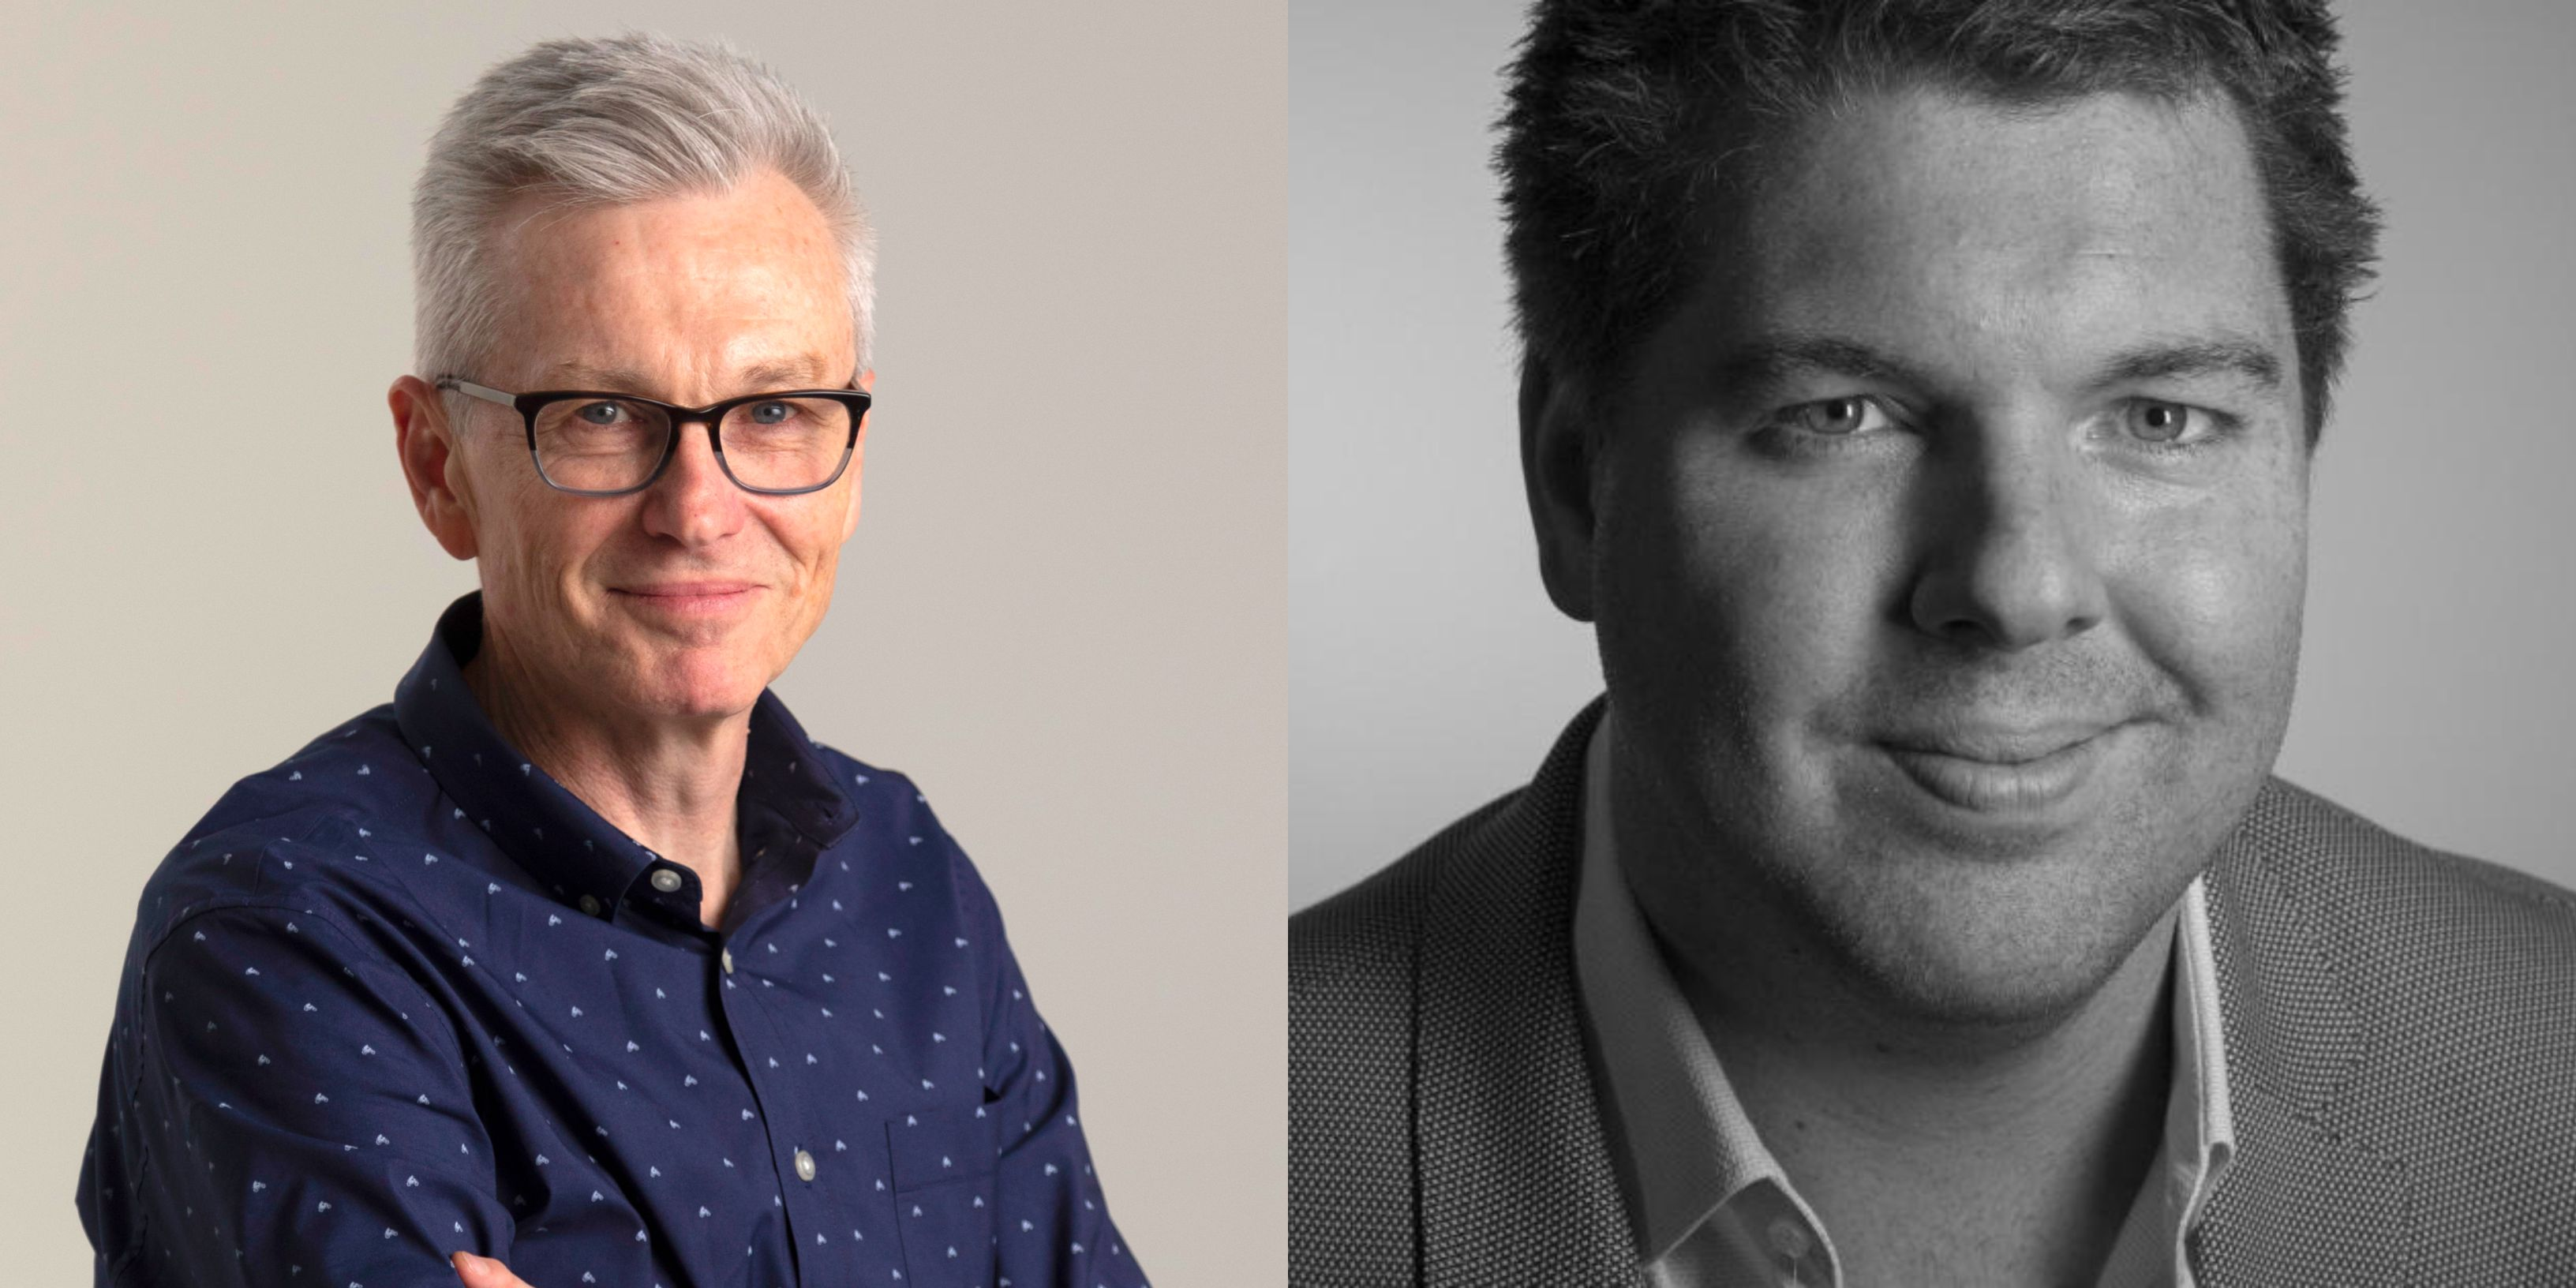 Former Marketforce Perth ECD Jon Bird set to replace Aden Hepburn as regional CEO of VMLY&R Australia and New Zealand